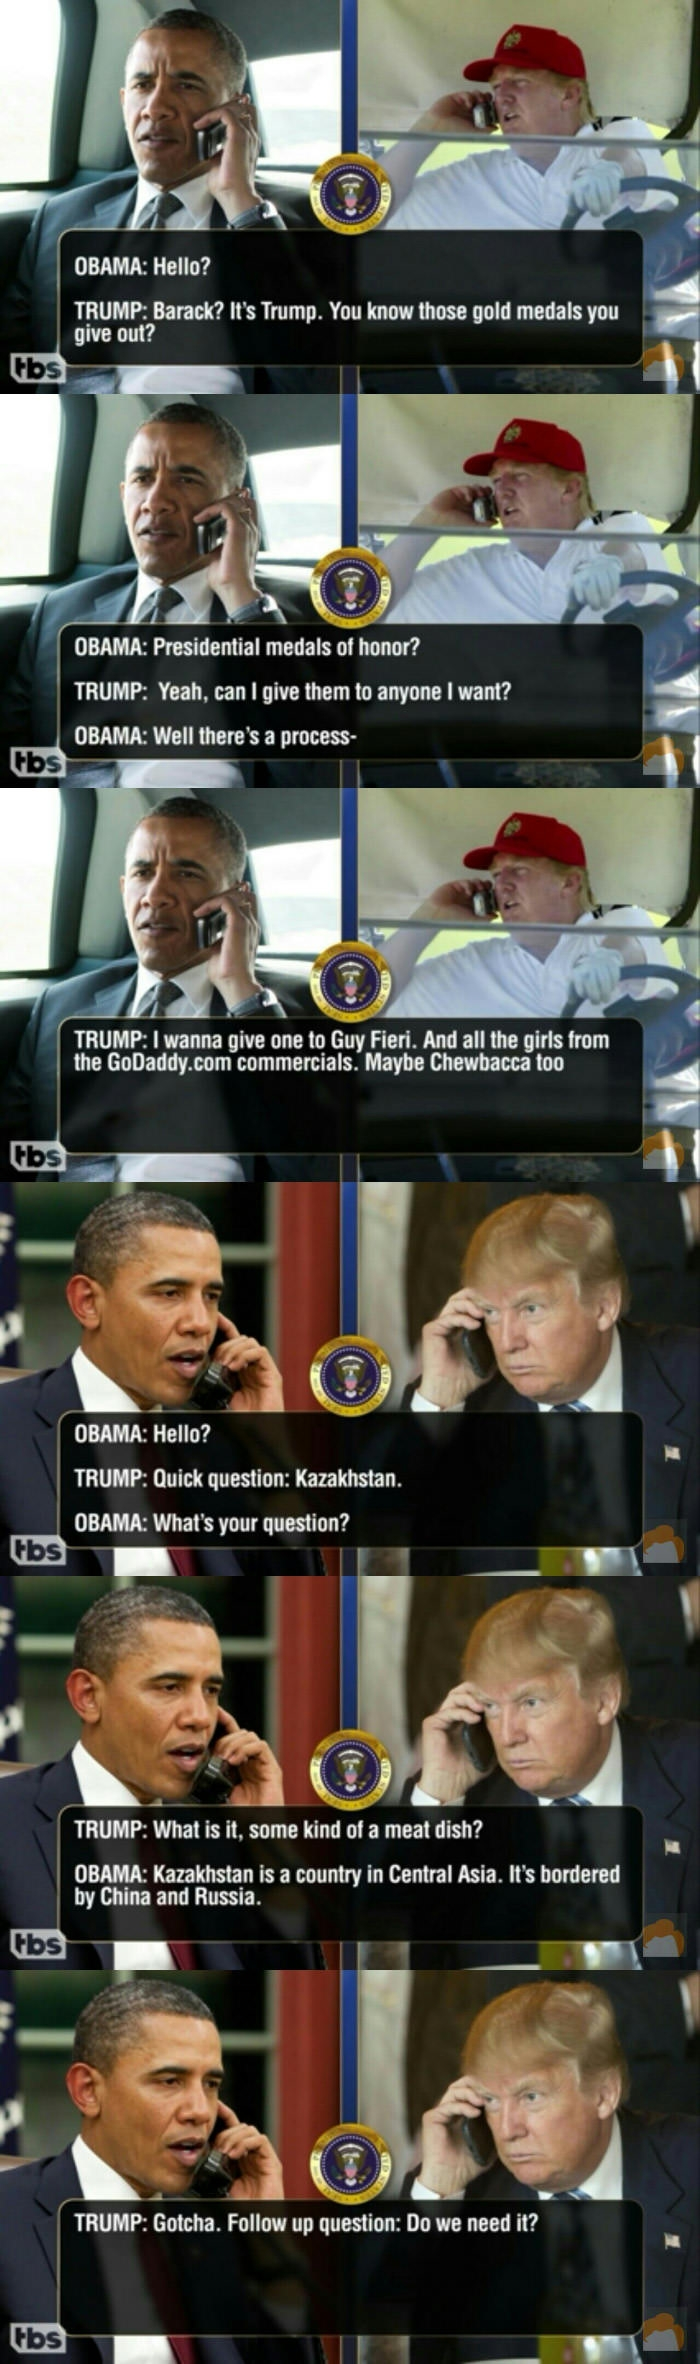 Leaked transcripts of Trump & Obama pt.3